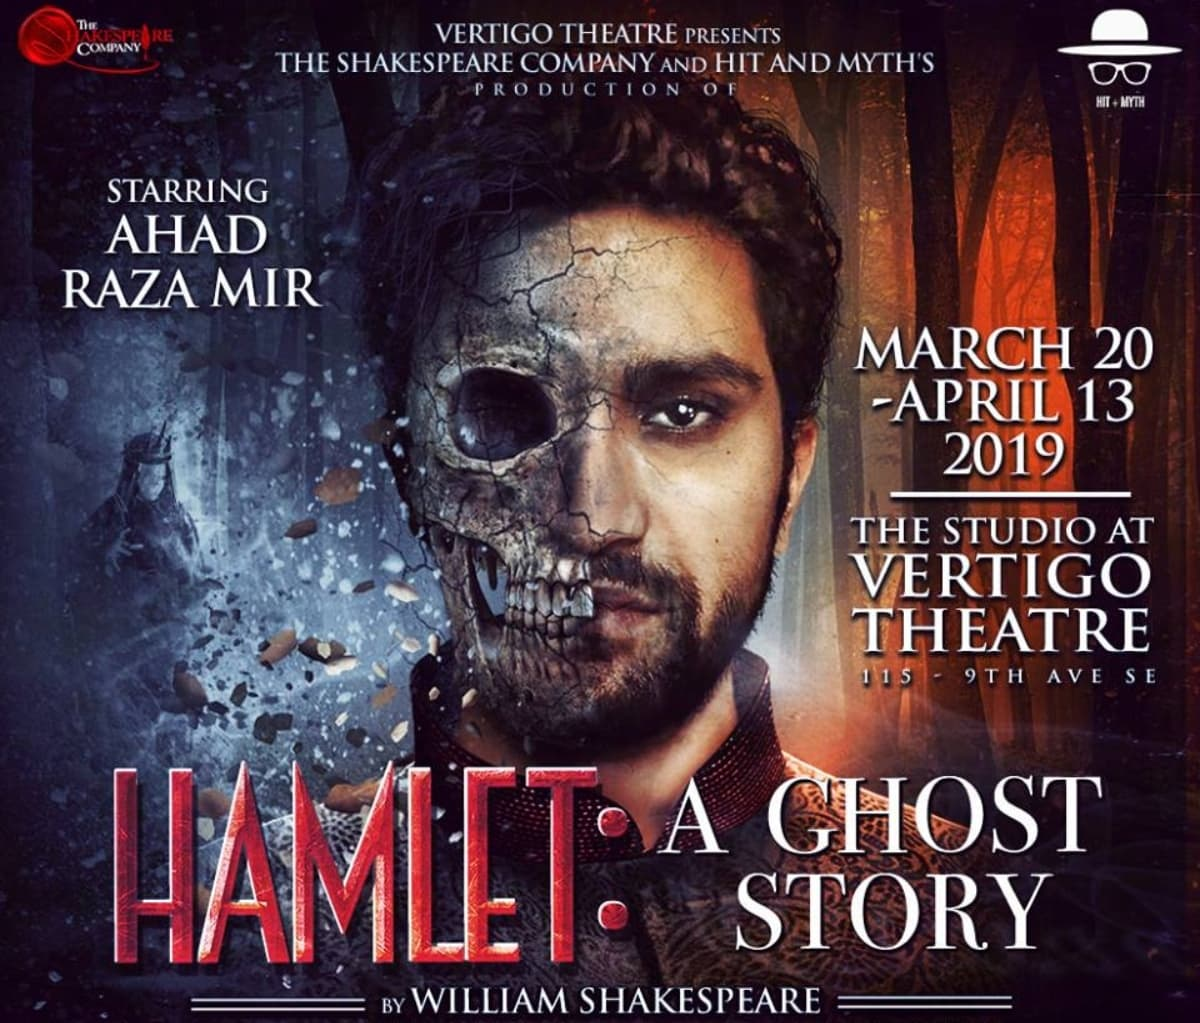 Ahad on the poster of the Hamlet production by The Shakespeare Company in Calgary